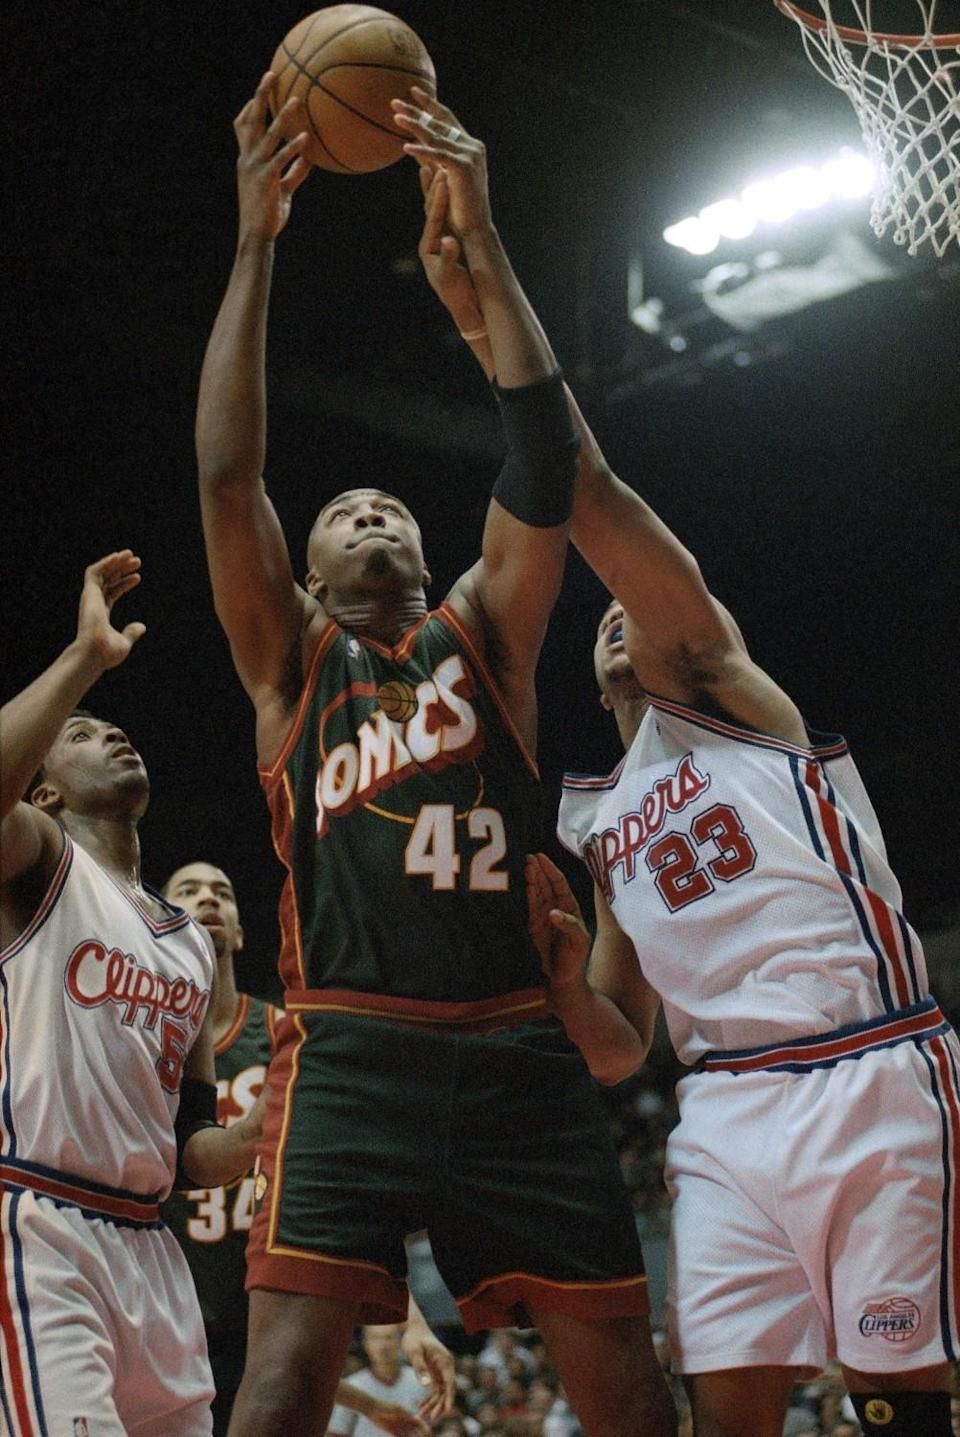 SuperSonics forward Vin Baker pulls down a rebound against the Clippers in 1999.